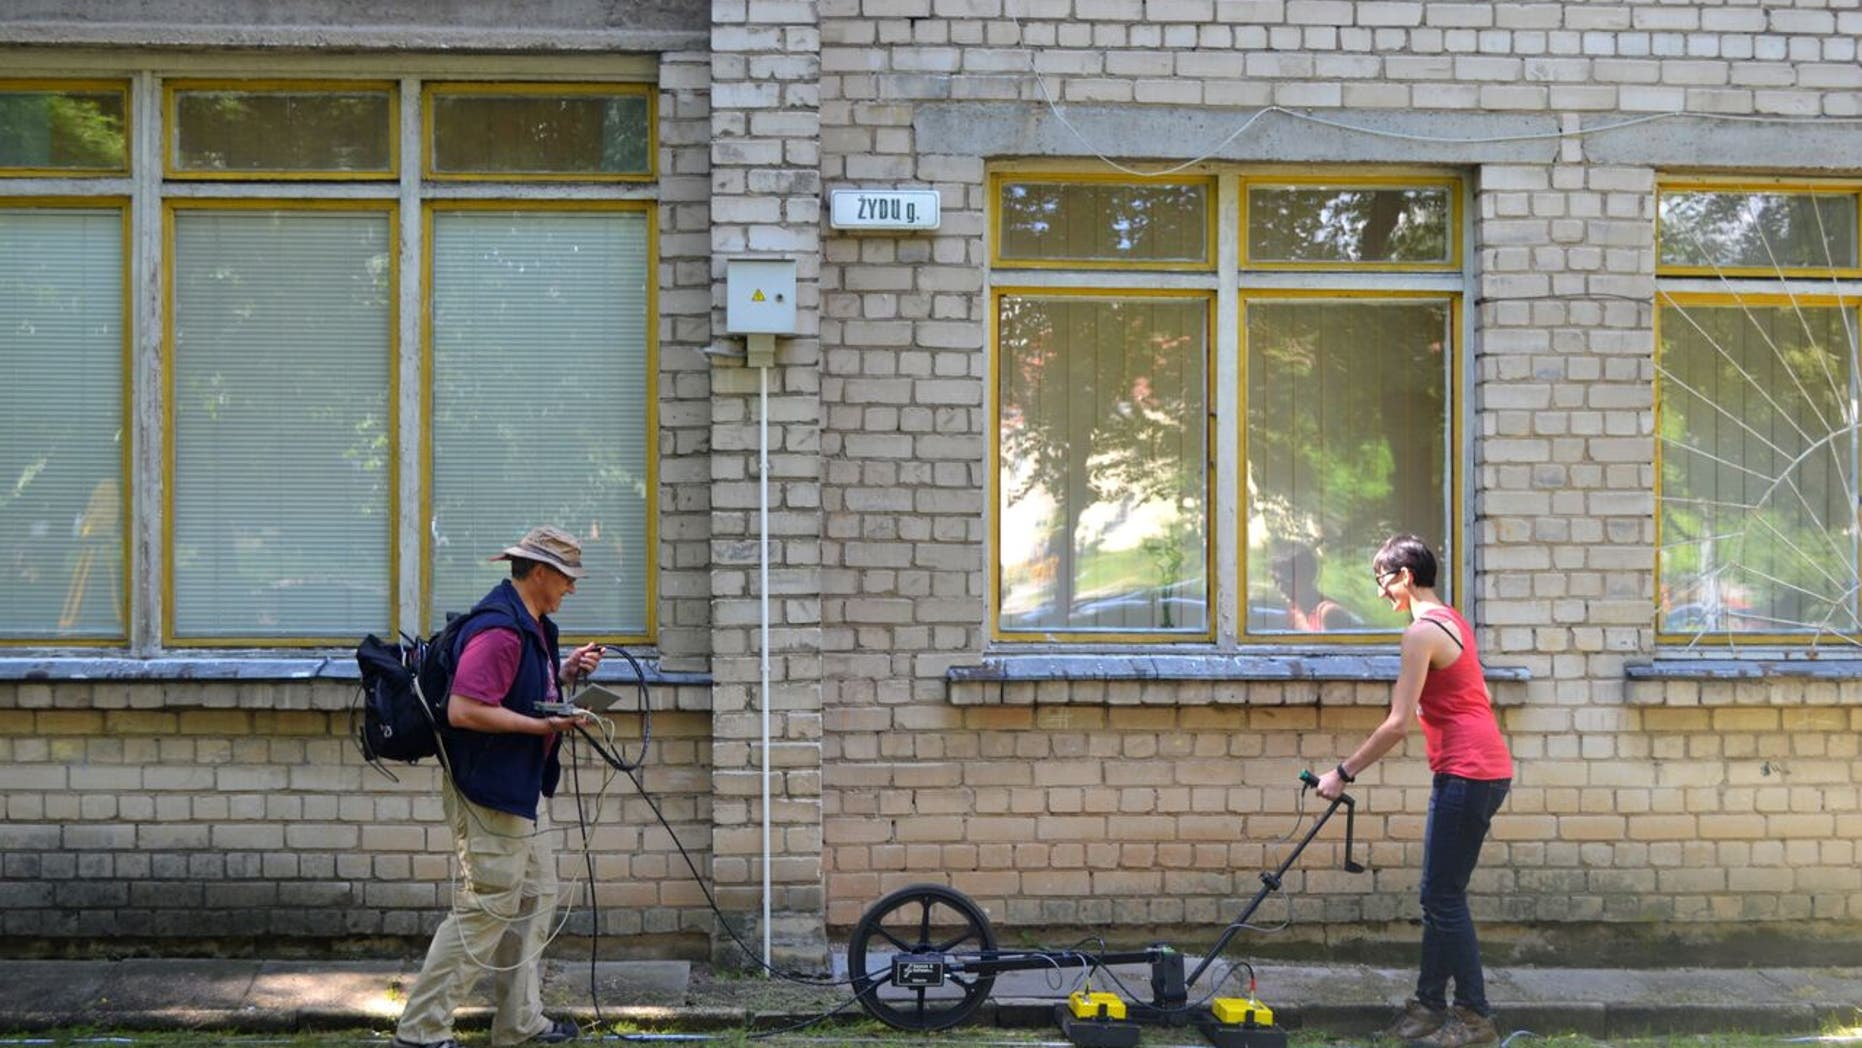 Prof. Harry Jol & Nicole Awad conducting a  Ground Penetrating Radar survey at the site of the Great Synagogue of Vilna in Lithuania.